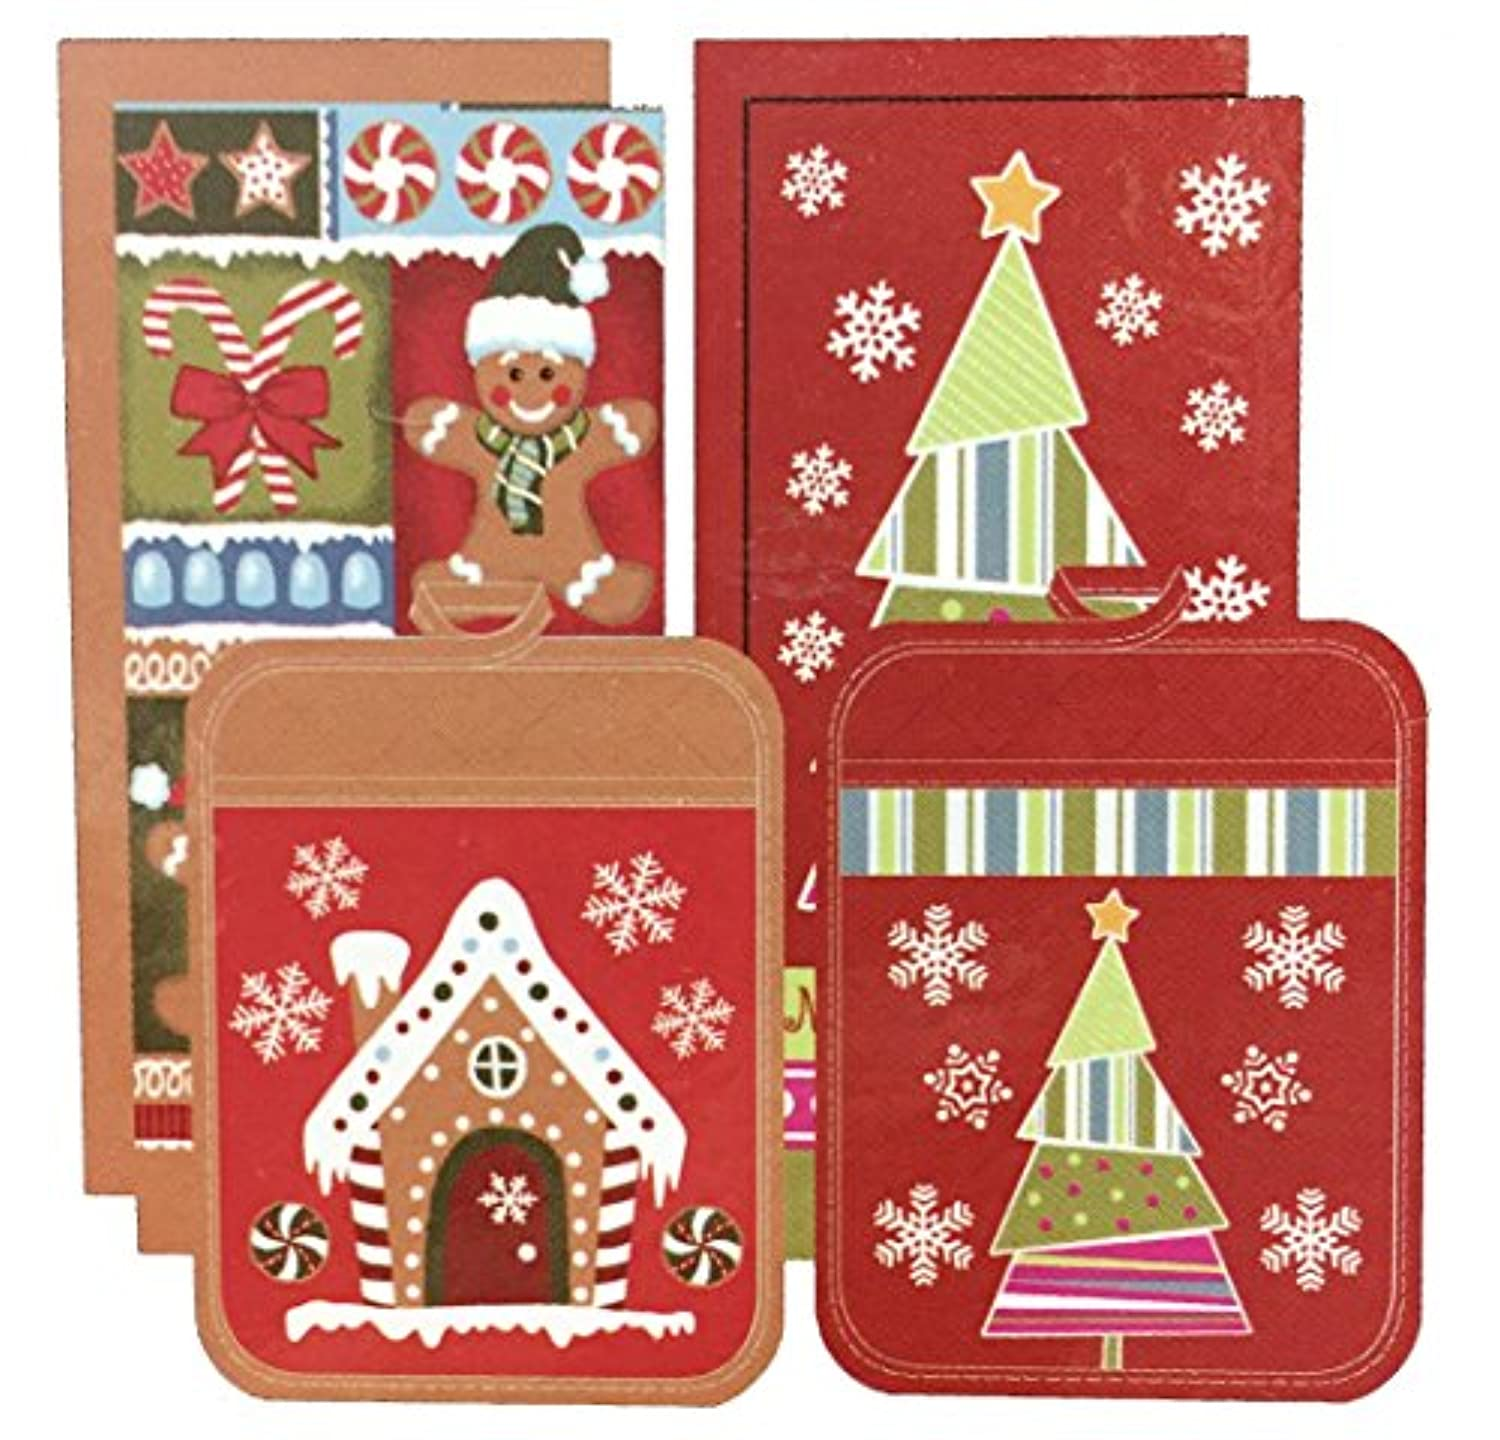 Town & Country Living クリスマス キッチン6点セット A タイプ (キッチンタオル×4 鍋敷き×2) Christmas 6Pack Kitchen Towel & Pot Holder Set